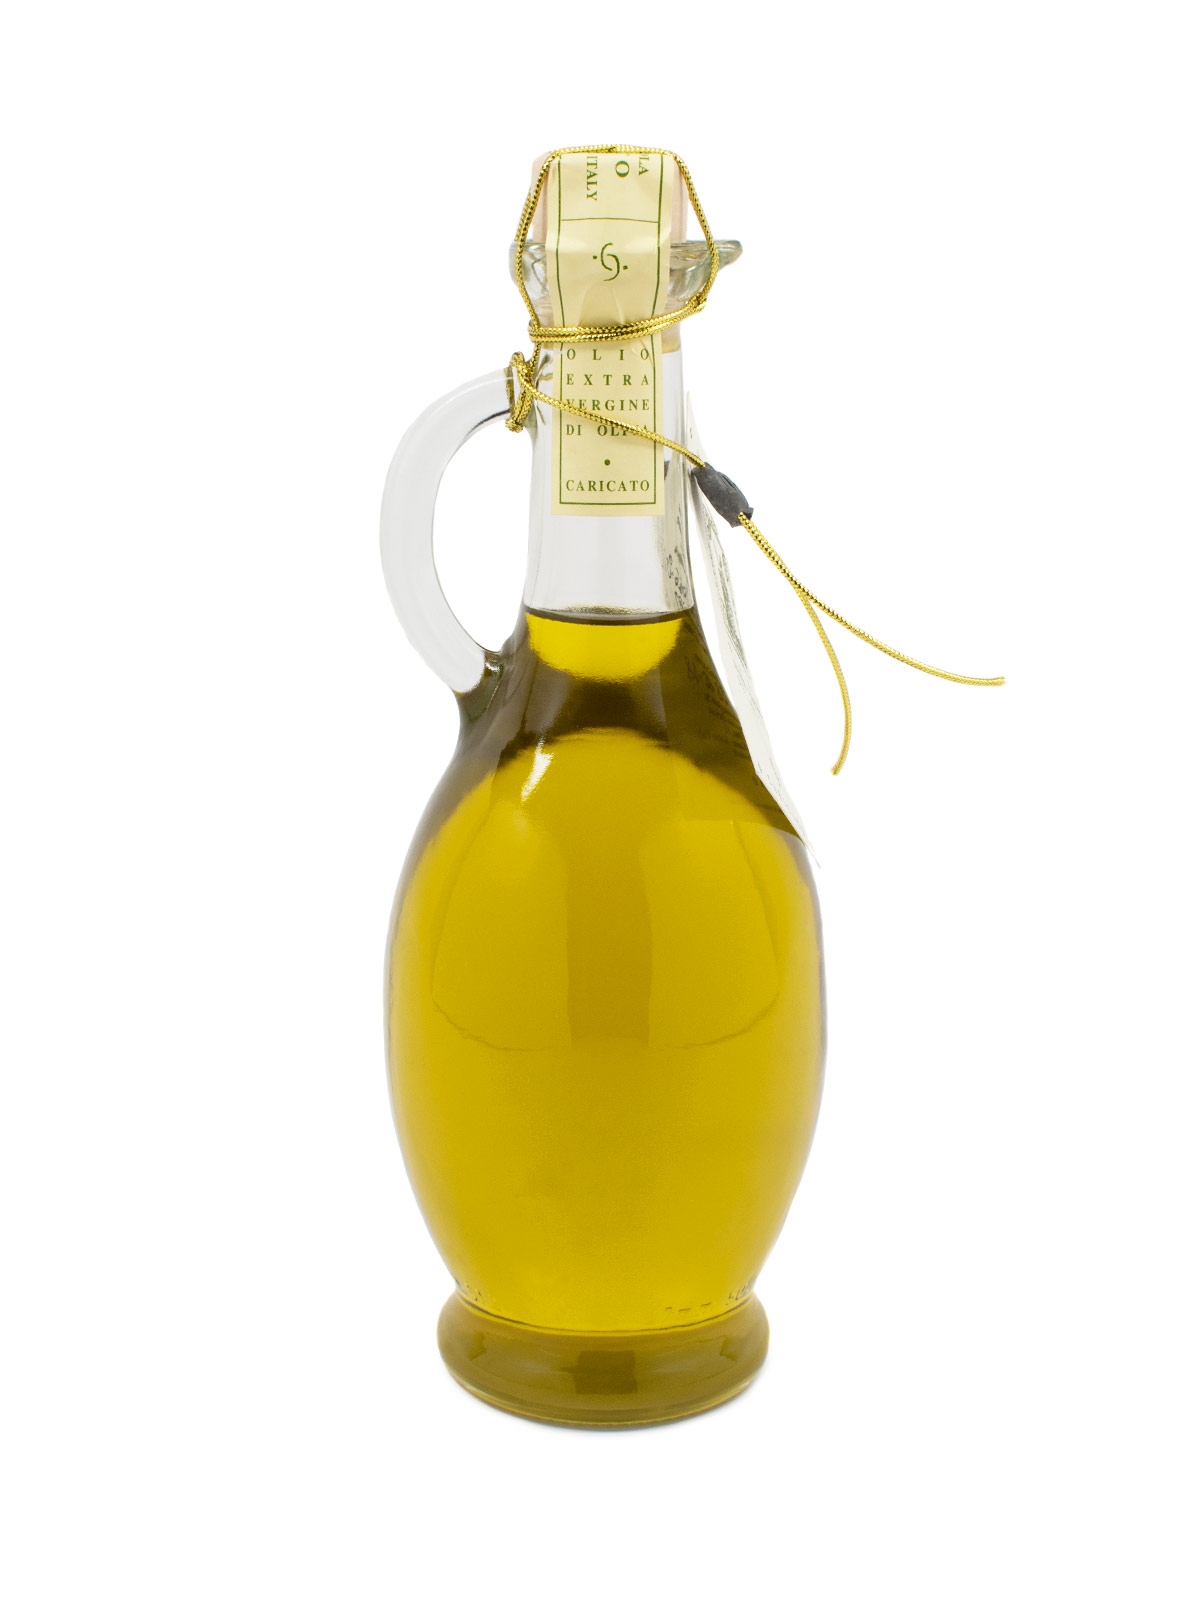 Affiorato Extra Virgin Olive Oil - Oils & Vinegars - Buon'Italia